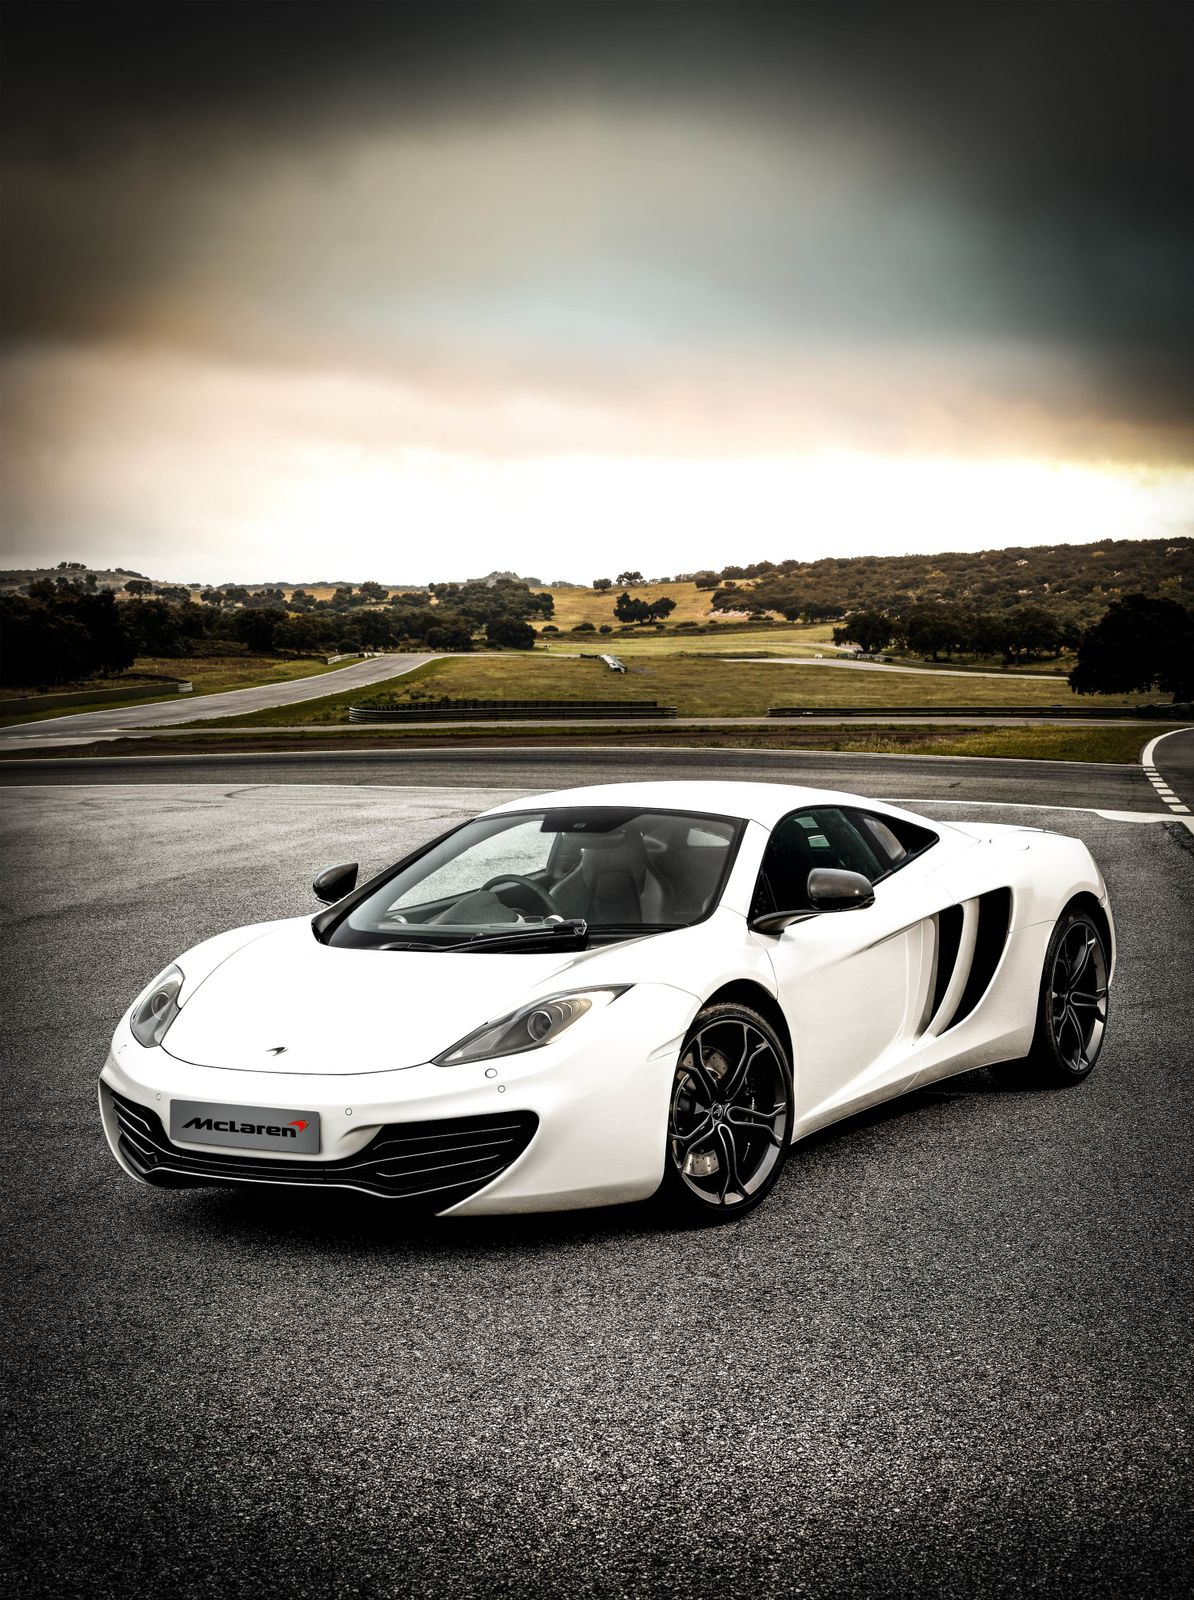 http://idata.over-blog.com/4/30/91/45/mclaren_12c_2013my002.jpg